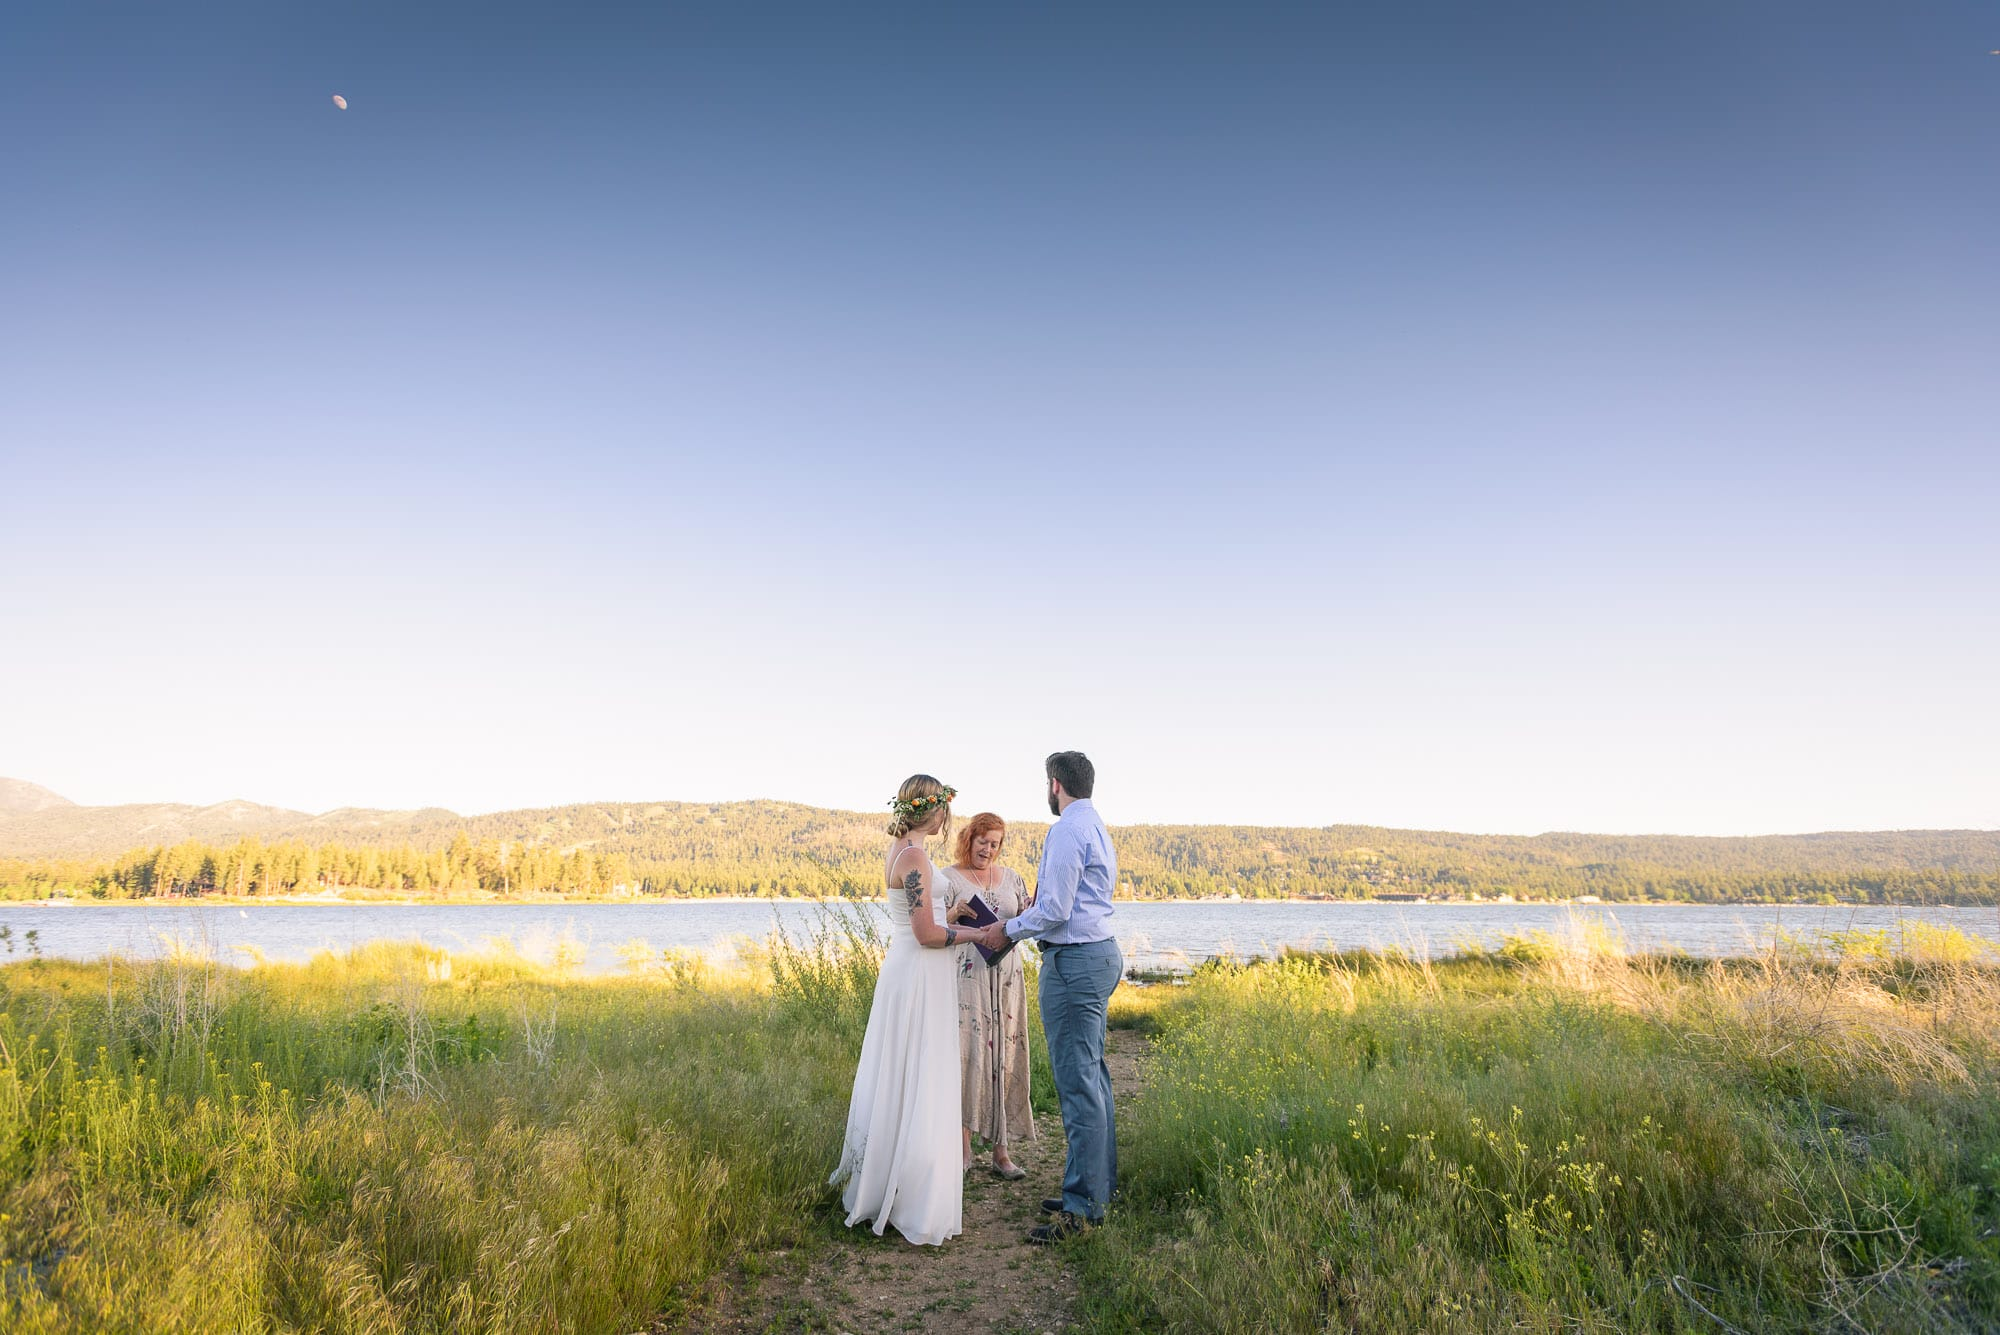 033_Alan_and_Heidi_Kensey_Josh_Big_Bear_Elopement